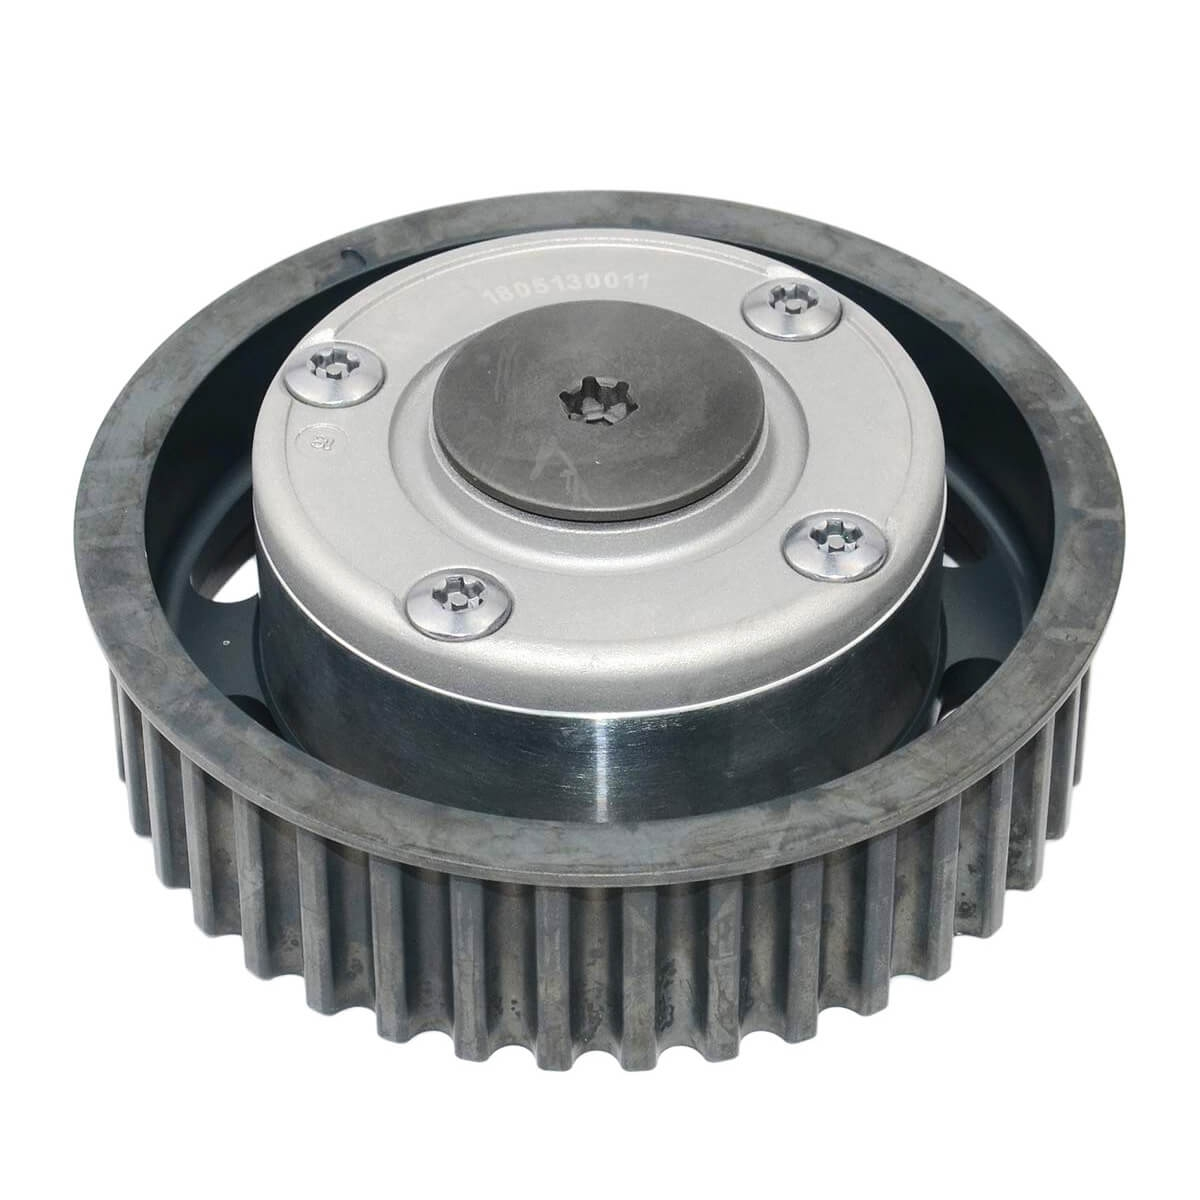 AUDI S6 Cam Dephaser Pulley